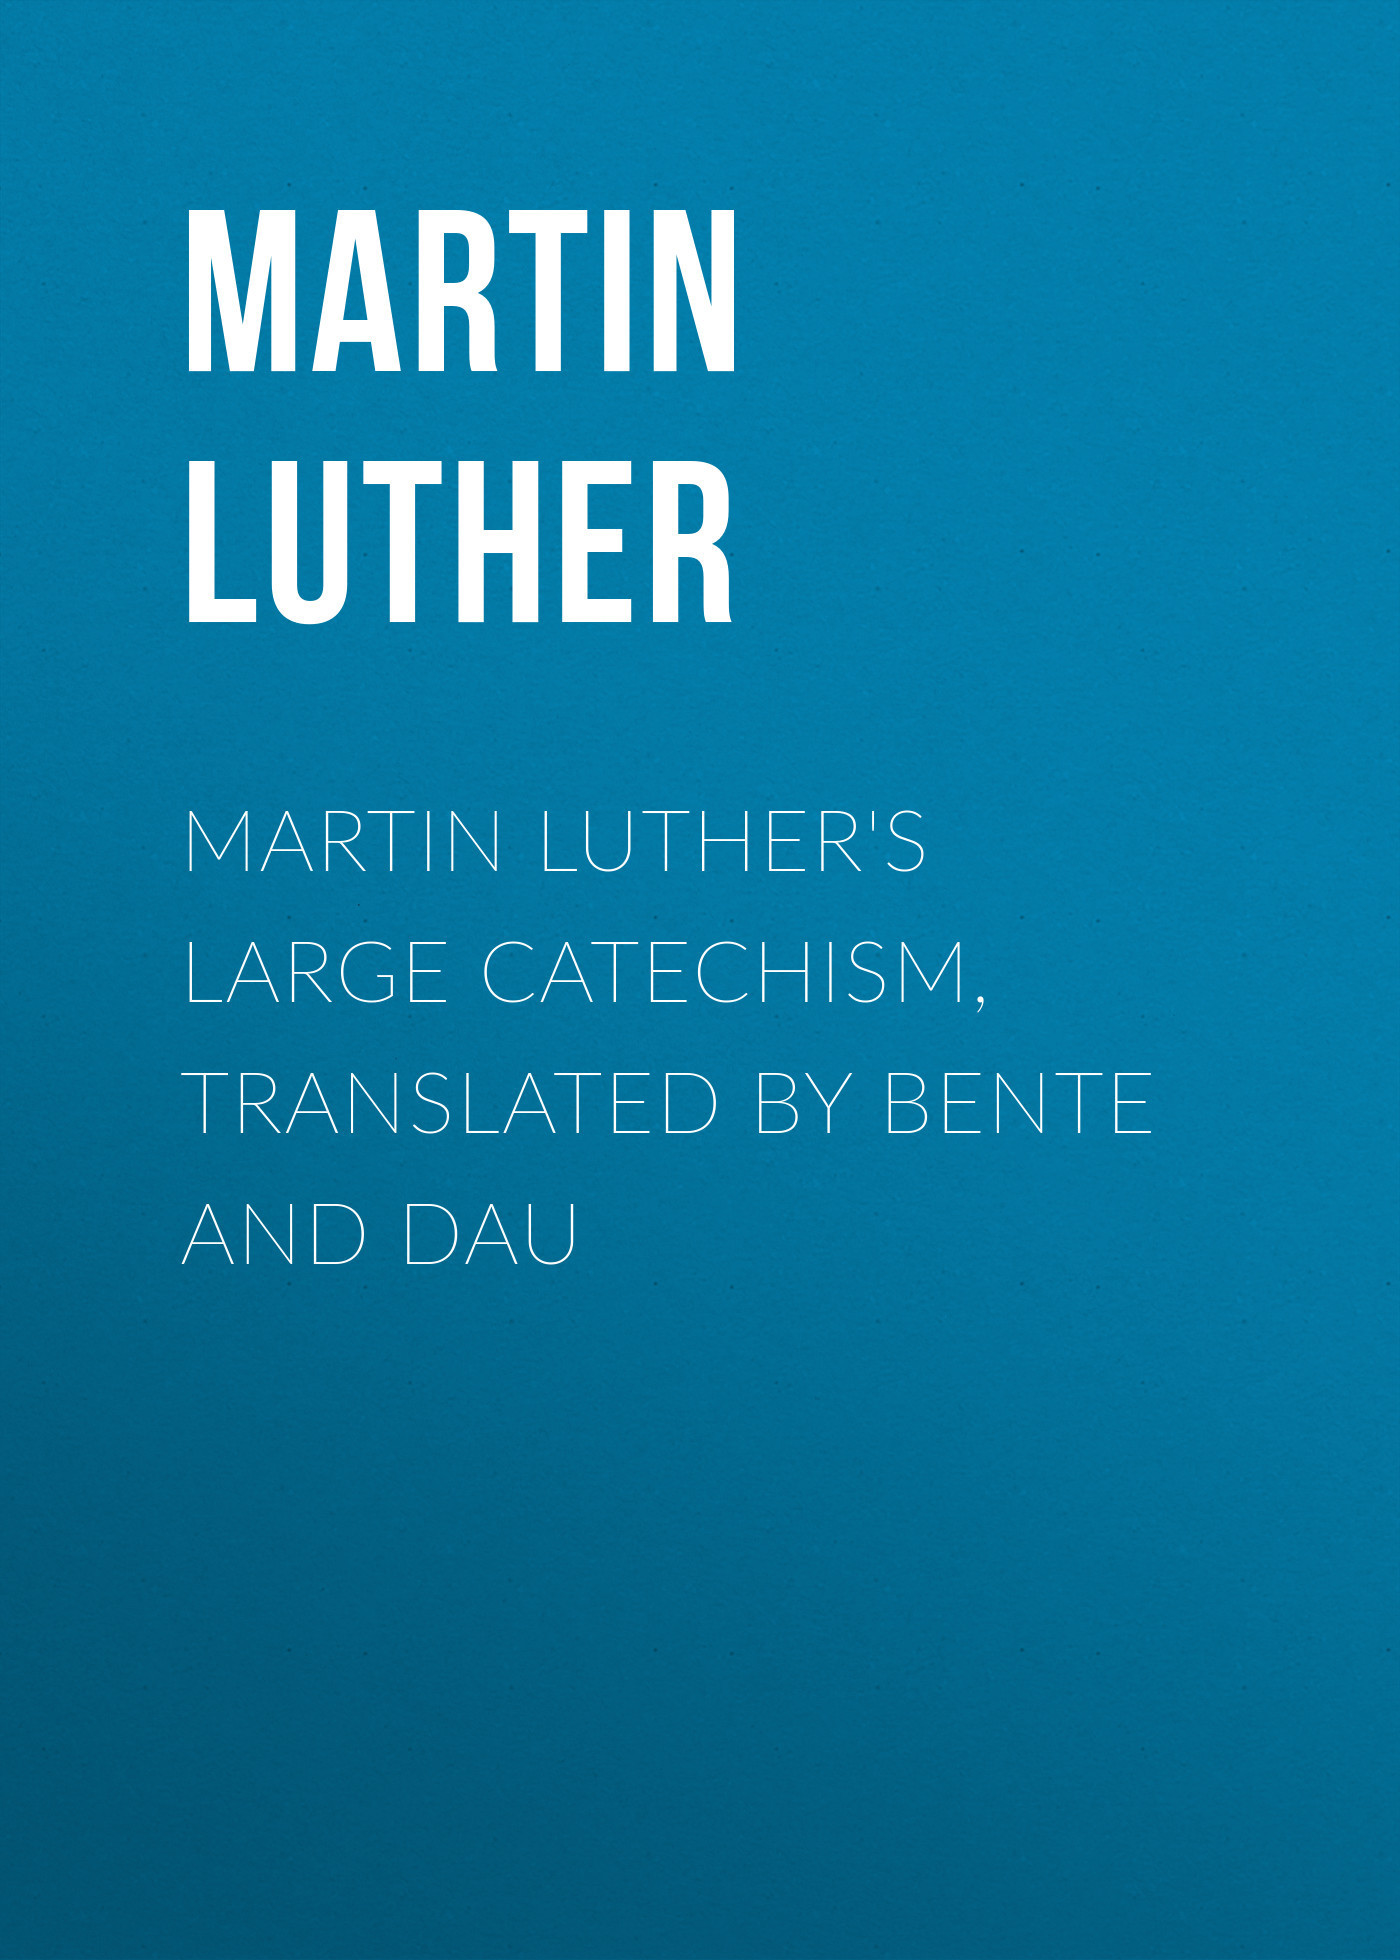 Martin Luther Martin Luther's Large Catechism, translated by Bente and Dau martin luther dr martin luther s deutsche geistliche lieder